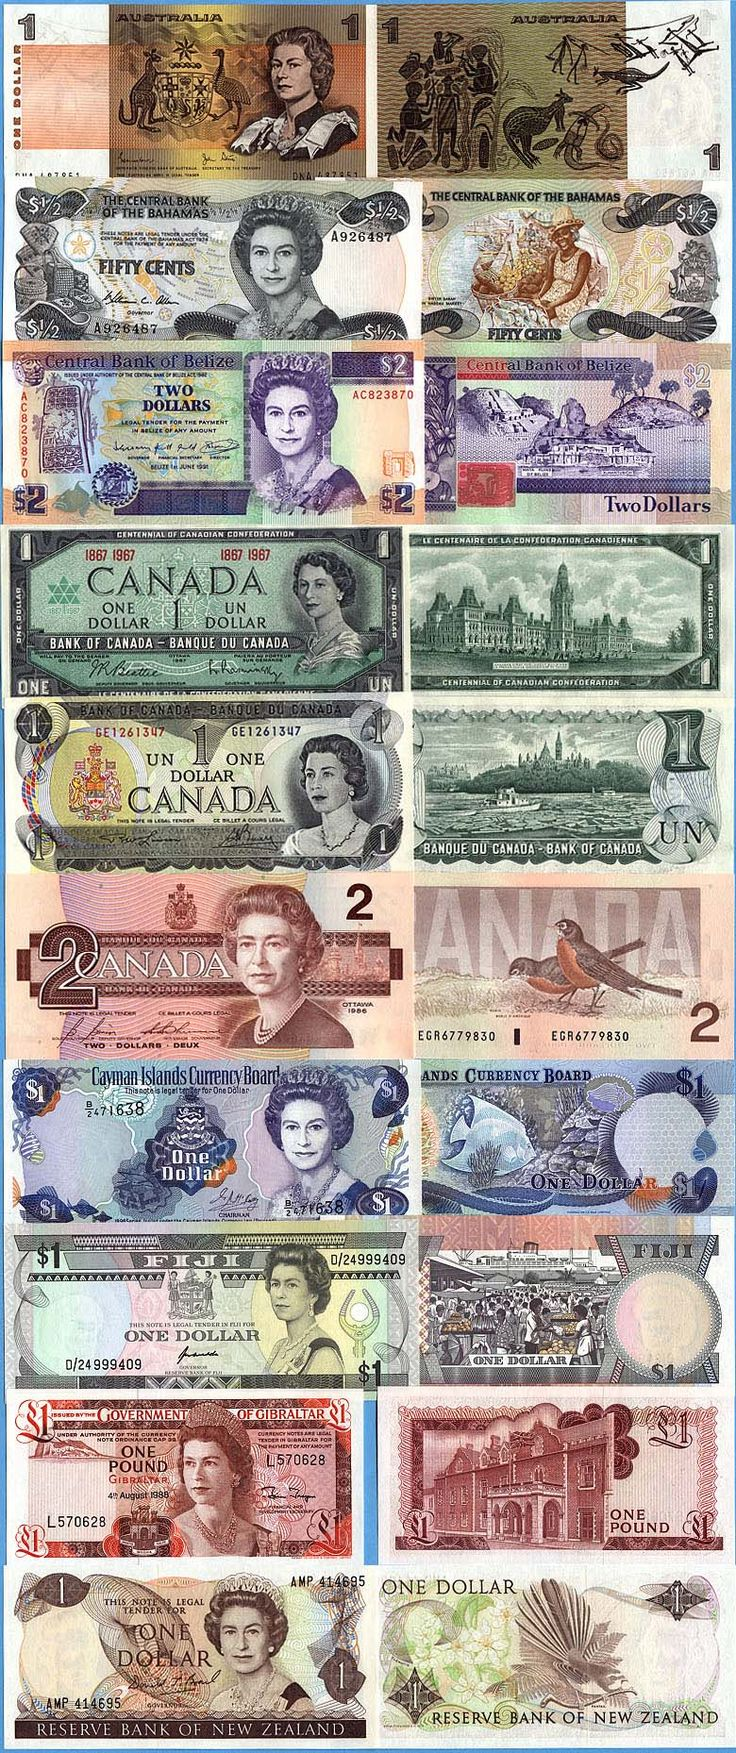 World paper bills | World banknotes and paper money, countries A-F ============================= profgasparetto / eagasparetto / Dom Gaspar I ================================== www.profgasparetto21.wordpress.com ================================== https://independent.academia.edu/profeagasparetto